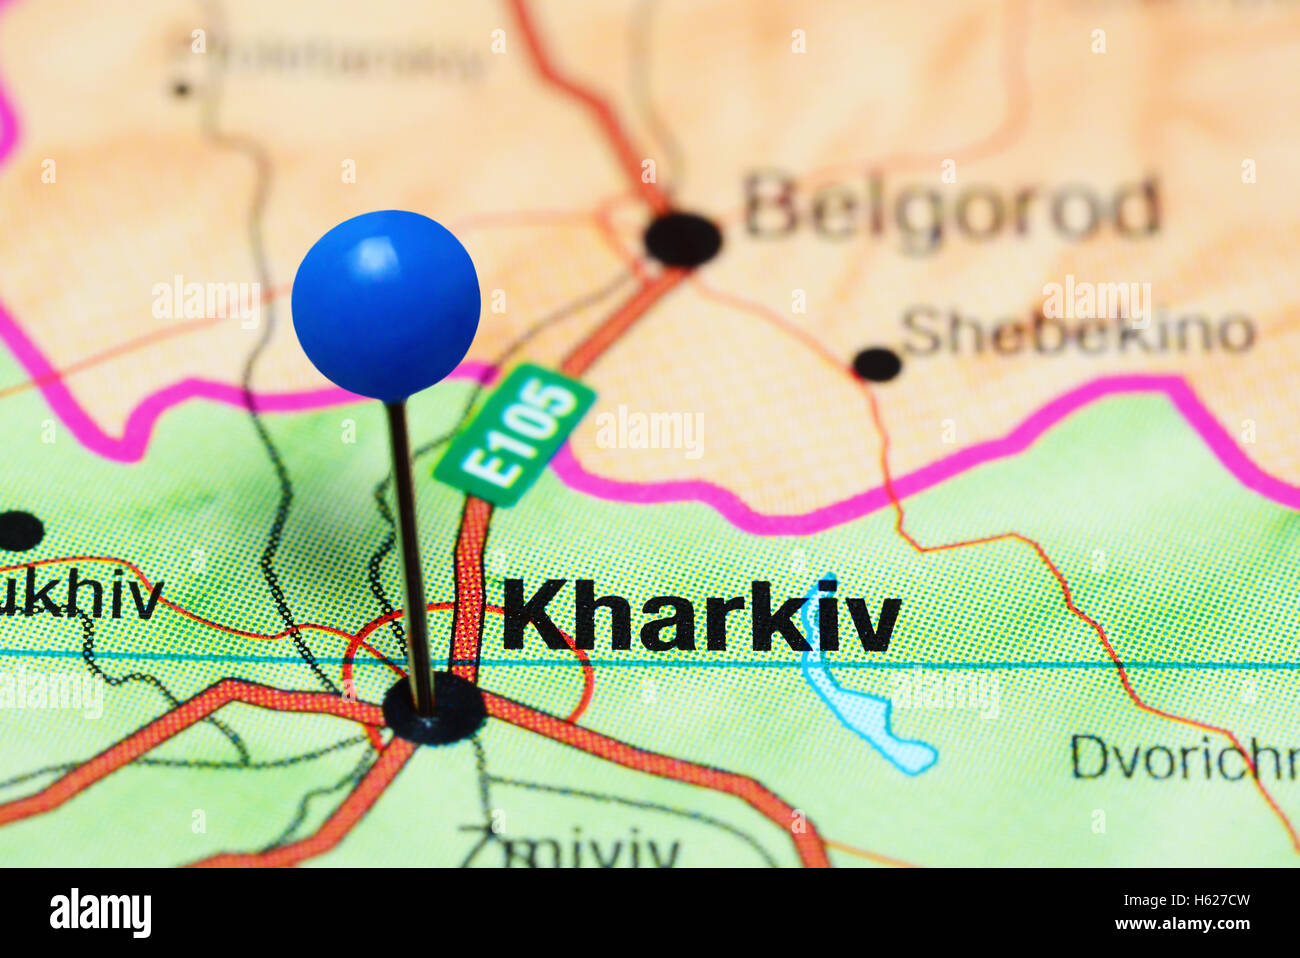 Kharkov Map Stock Photos & Kharkov Map Stock Images - Alamy on kharkiv military map, the lake of ozarks map, odessa ukraine map, crimea region ukraine map, kiev map, minsk map, kharkiv ukraine map, kramatorsk ukraine map, donetsk map, vinnytsia ukraine map, ukraine military bases map, east ukraine map, poltava map, bessarabia ukraine map, ato ukraine map, detailed city street map, belaya tserkov ukraine map, ukraine religion map, donbass ukraine map, dnipropetrovsk ukraine map,